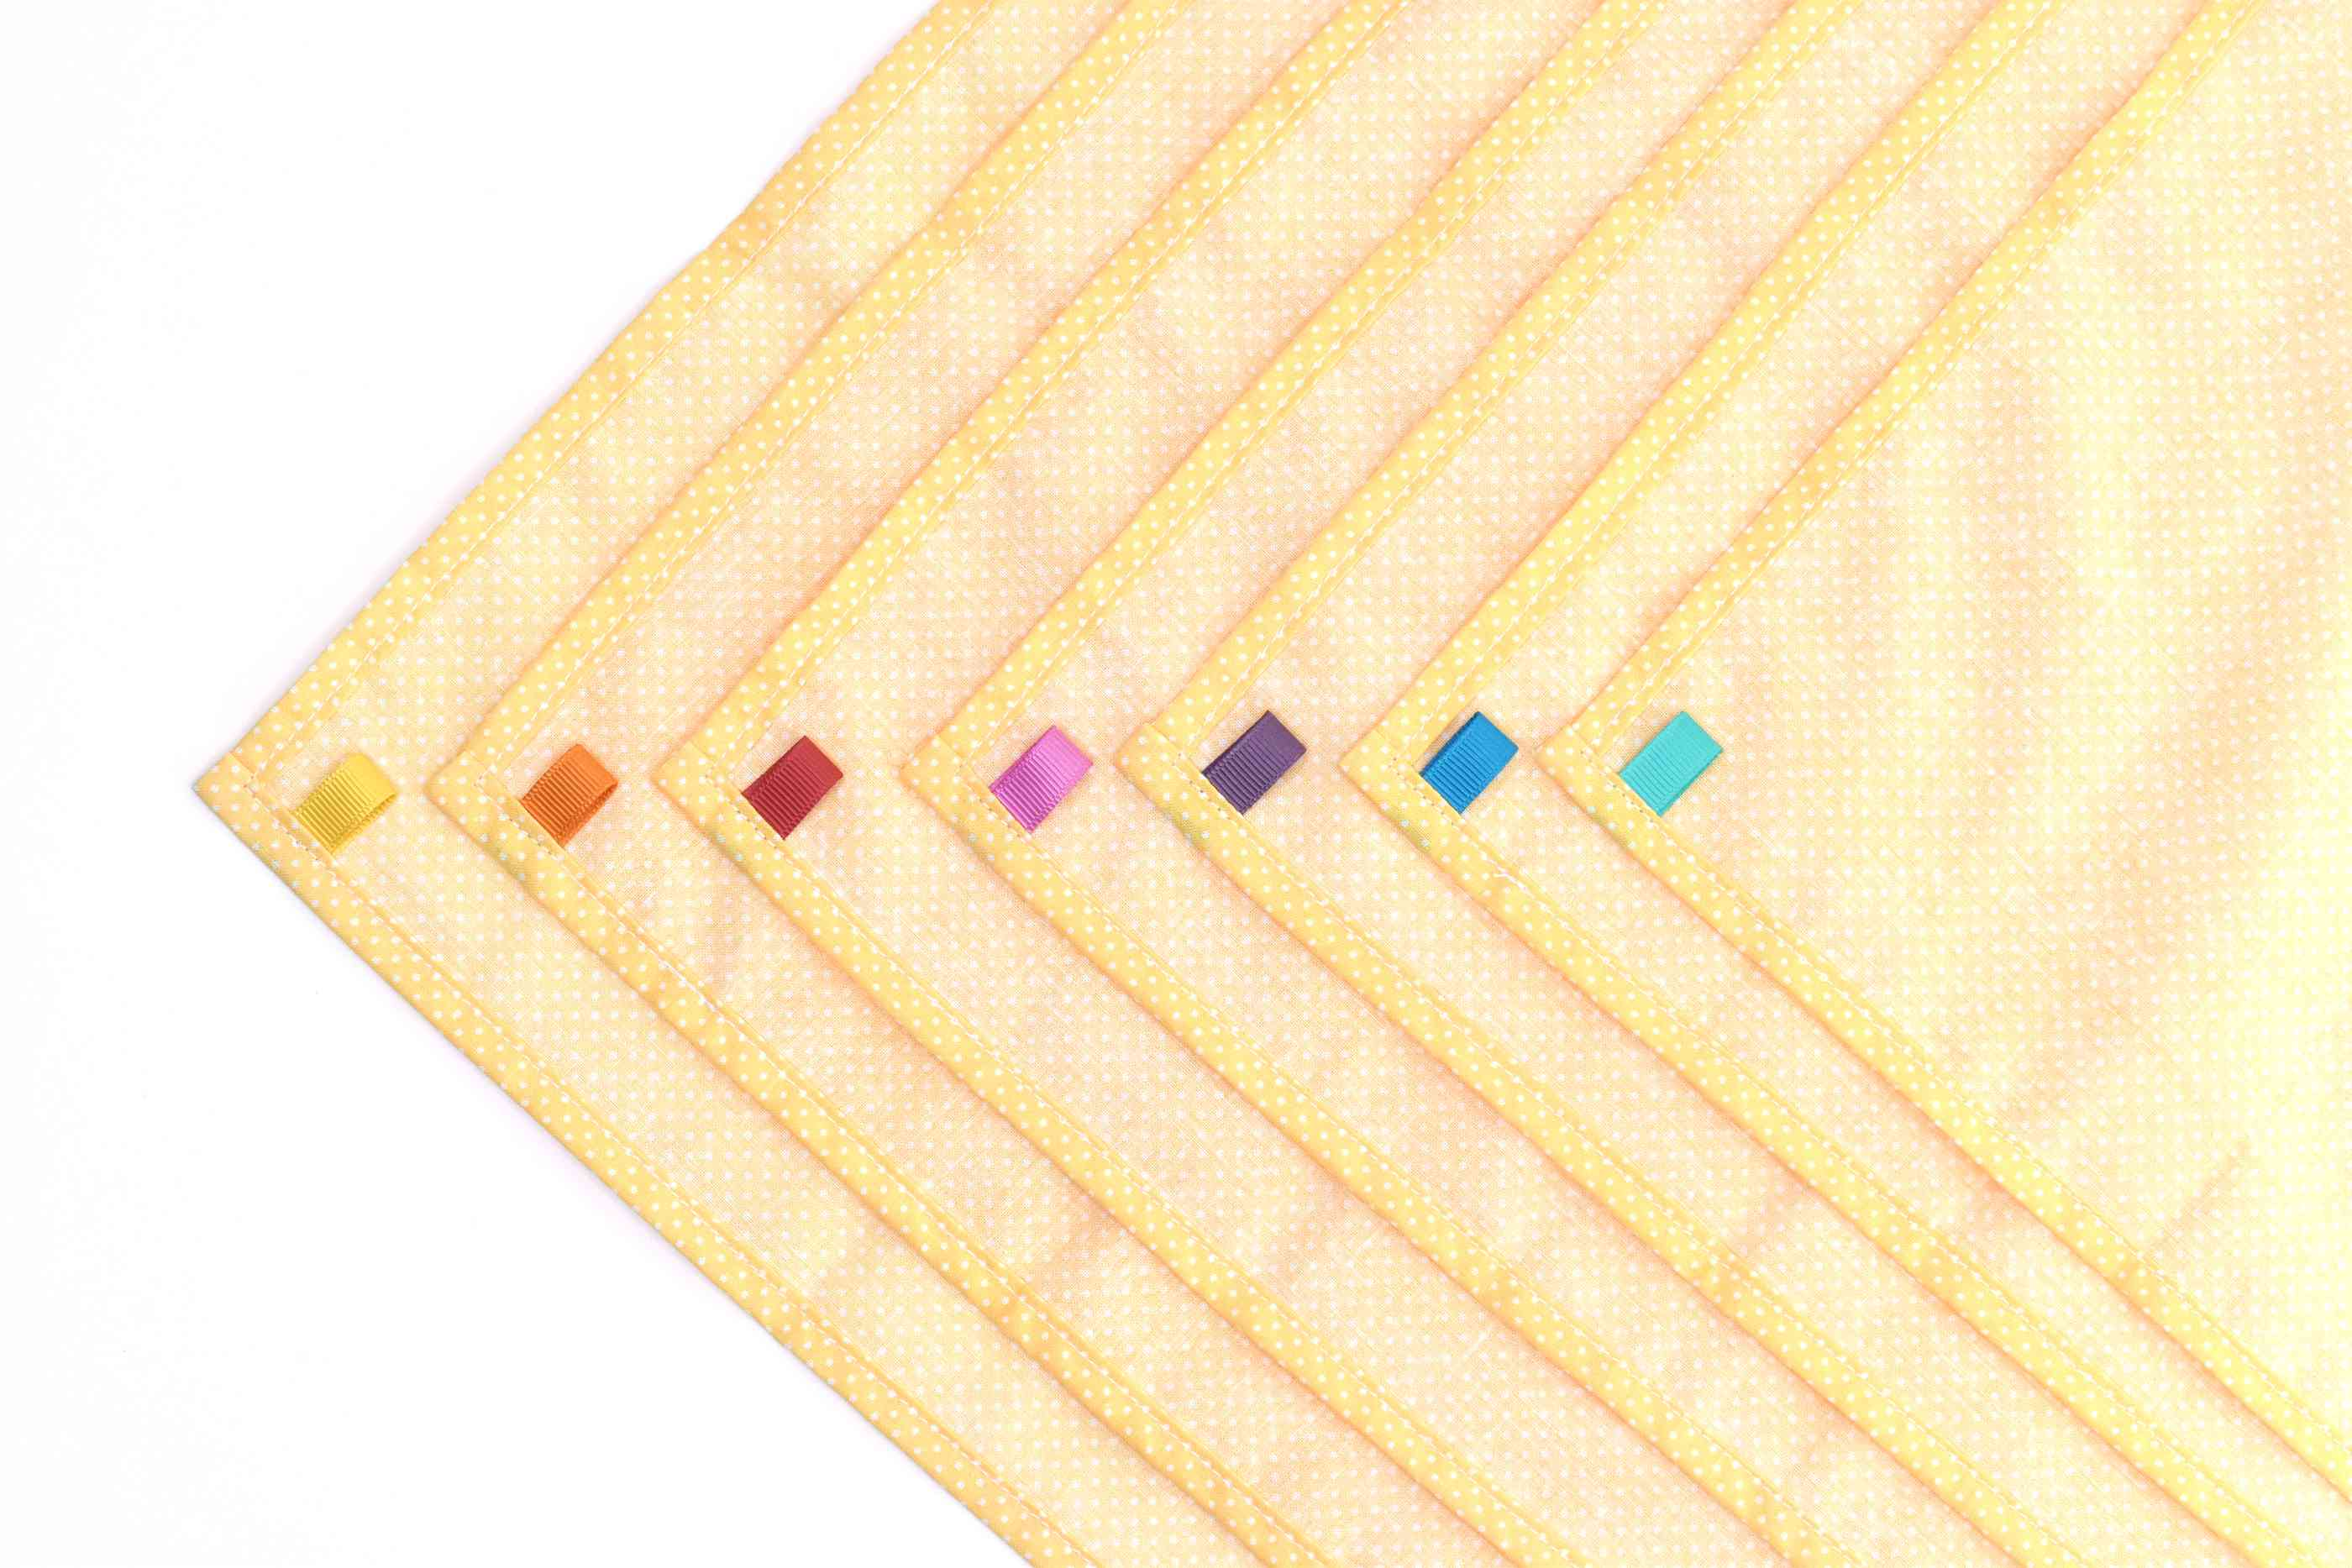 Add Color-Coded Ribbons to Each Cloth Napkin